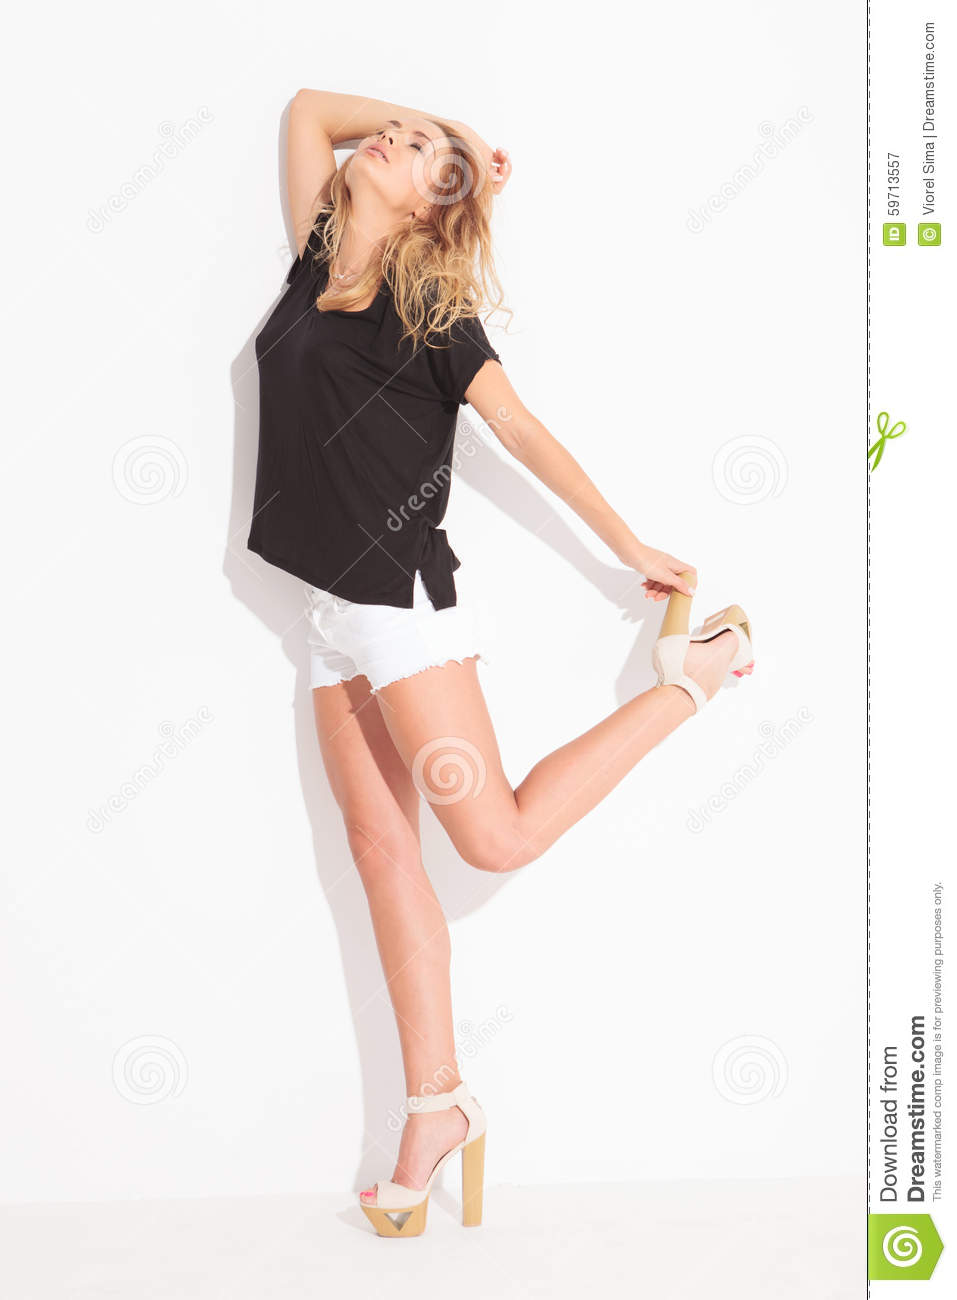 Blonde Girl Wearing Short Pants Looking Up While Holding Her Hee Stock Image Image Of Look Black 59713557